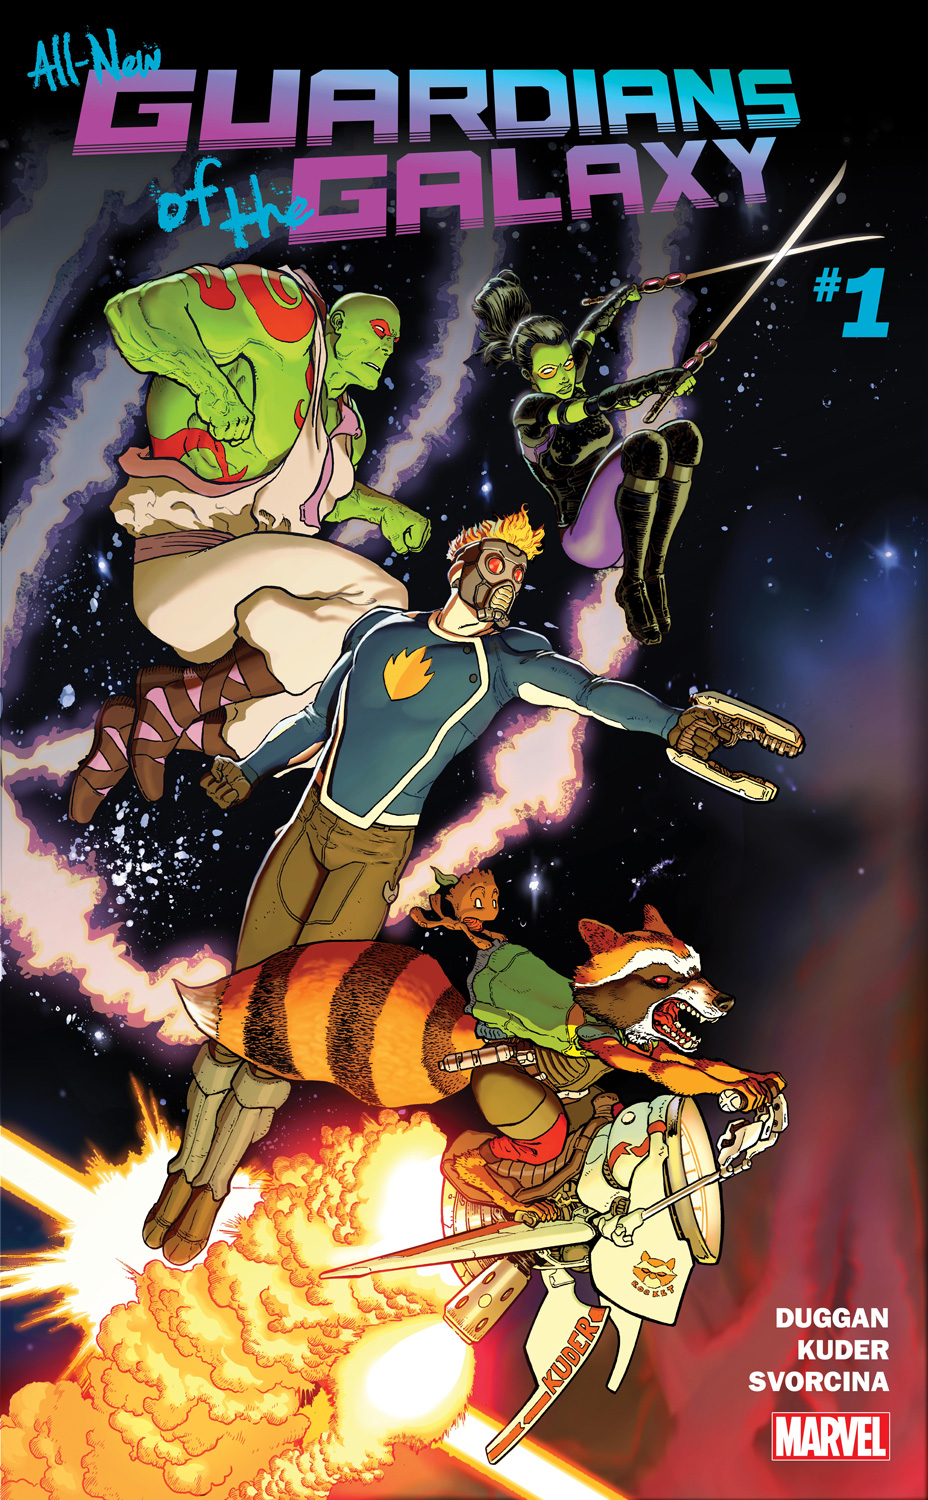 A NEW ERA OF COSMIC ADVENTURE BEGINS HERE! The Guardians of the Galaxy have taken off into space once more, on their biggest and weirdest misadventures yet! Kicking things off with the biggest heist they've ever tried, we join Star-Lord, Rocket Raccoon and company as they blast their way through the galaxy, the peacekeepers of the Nova Corps hot on their tails.